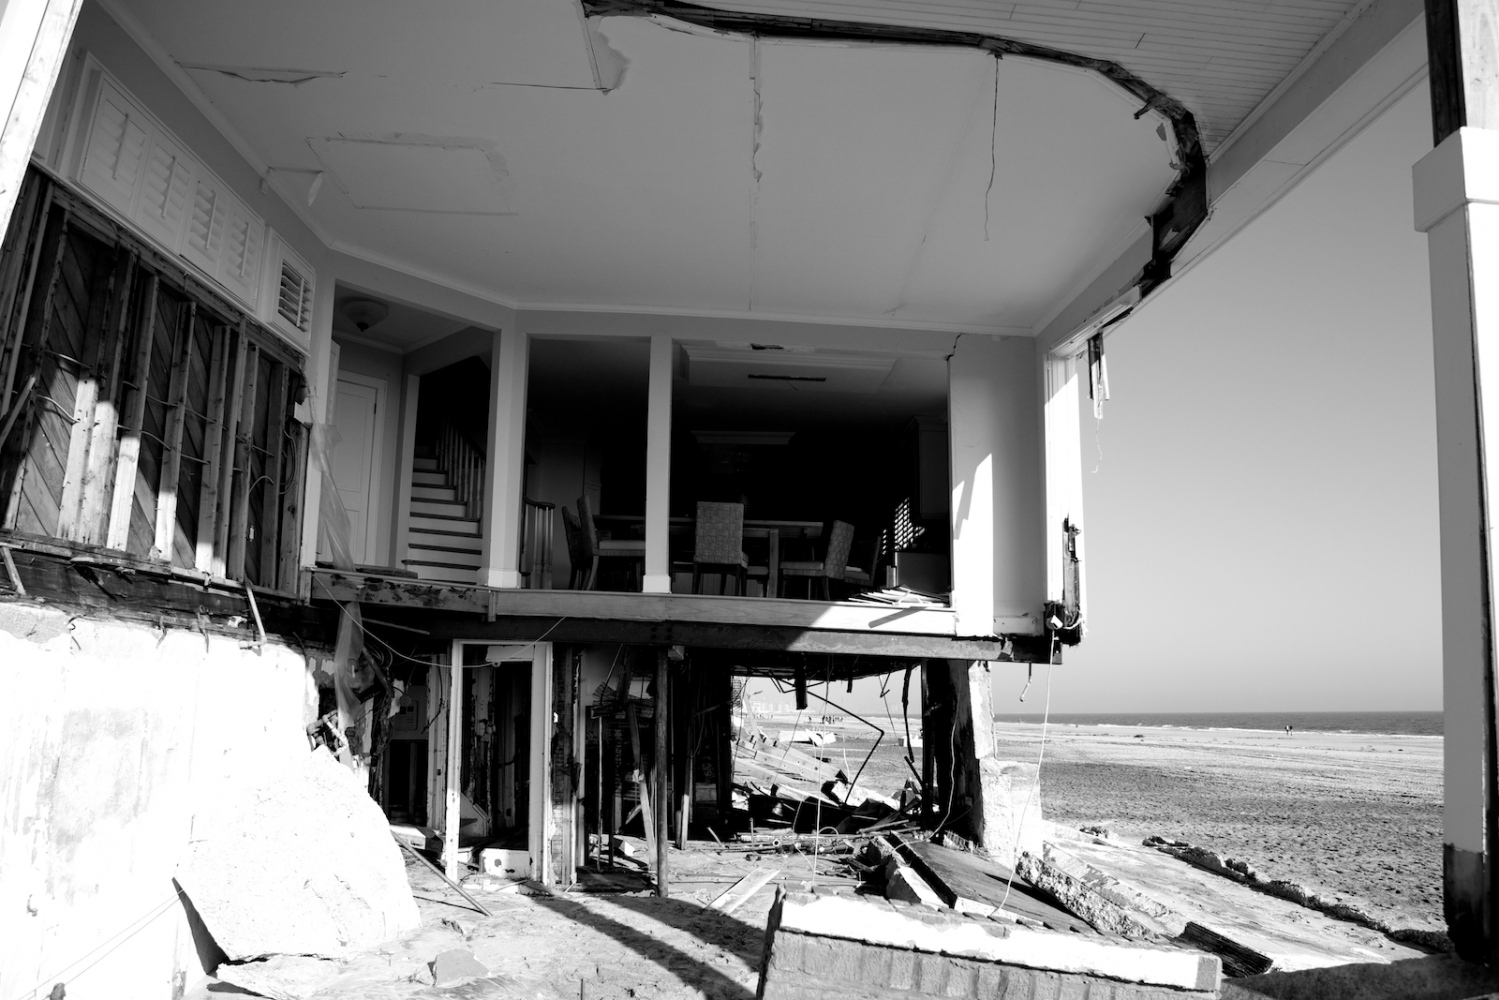 A house destroyed by Hurricane Sandy stands in Breezy Point, Queens, N.Y. on Nov. 11, 2012.